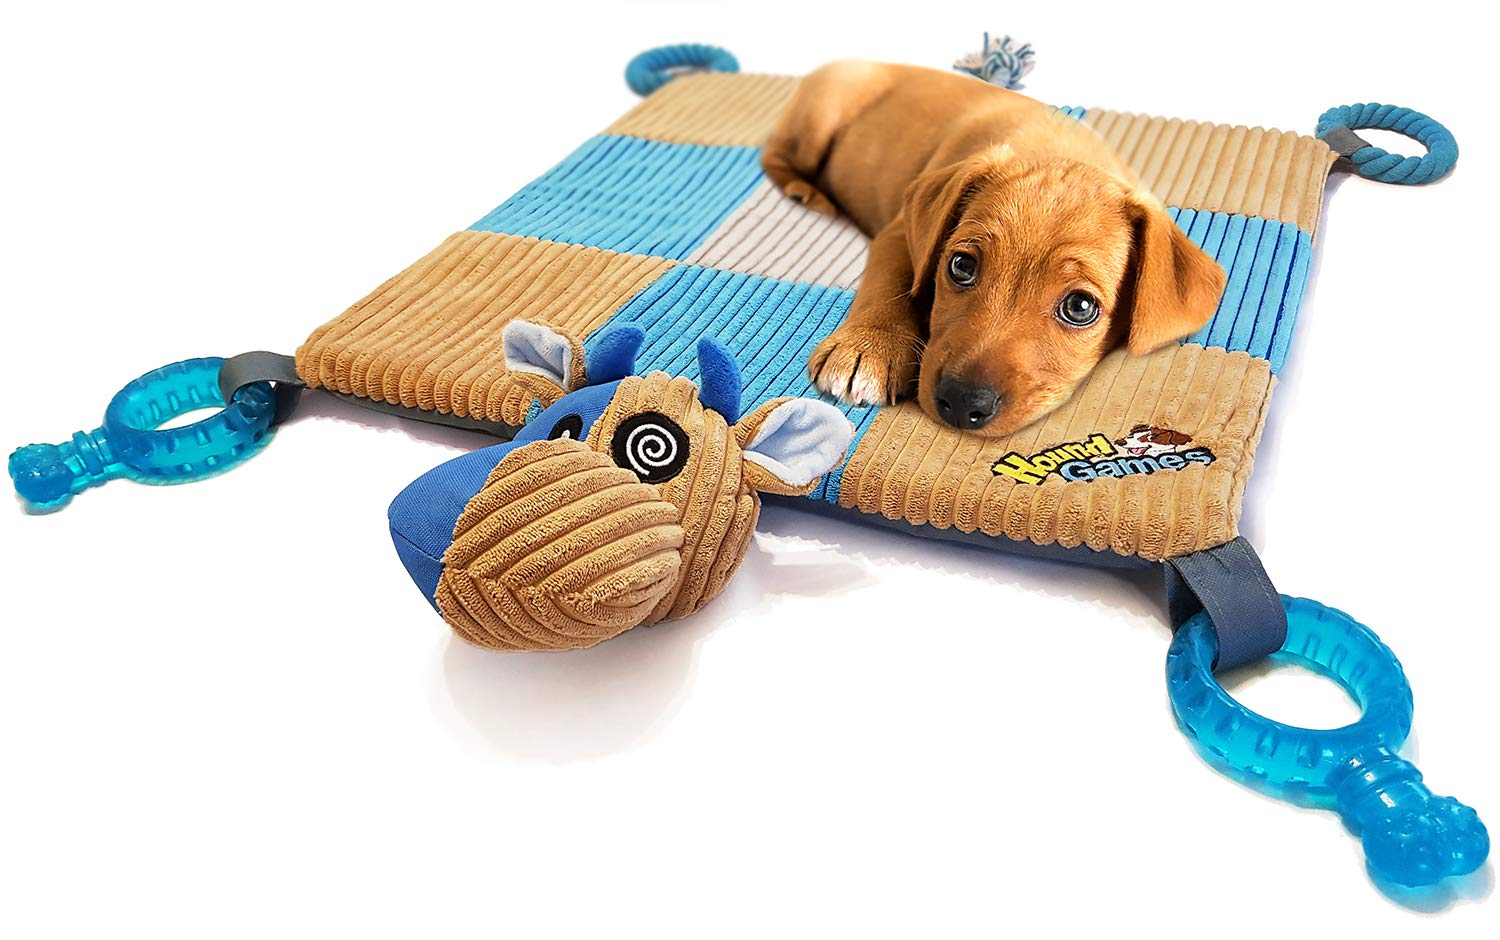 HOUNDGAMES Doggy Play Mat with Puppy Chew Toys, Teething Ropes, Dental Grade Quality, Squeaker Nose, Plush Padded Mat. Designed in The Colors Dogs See Best